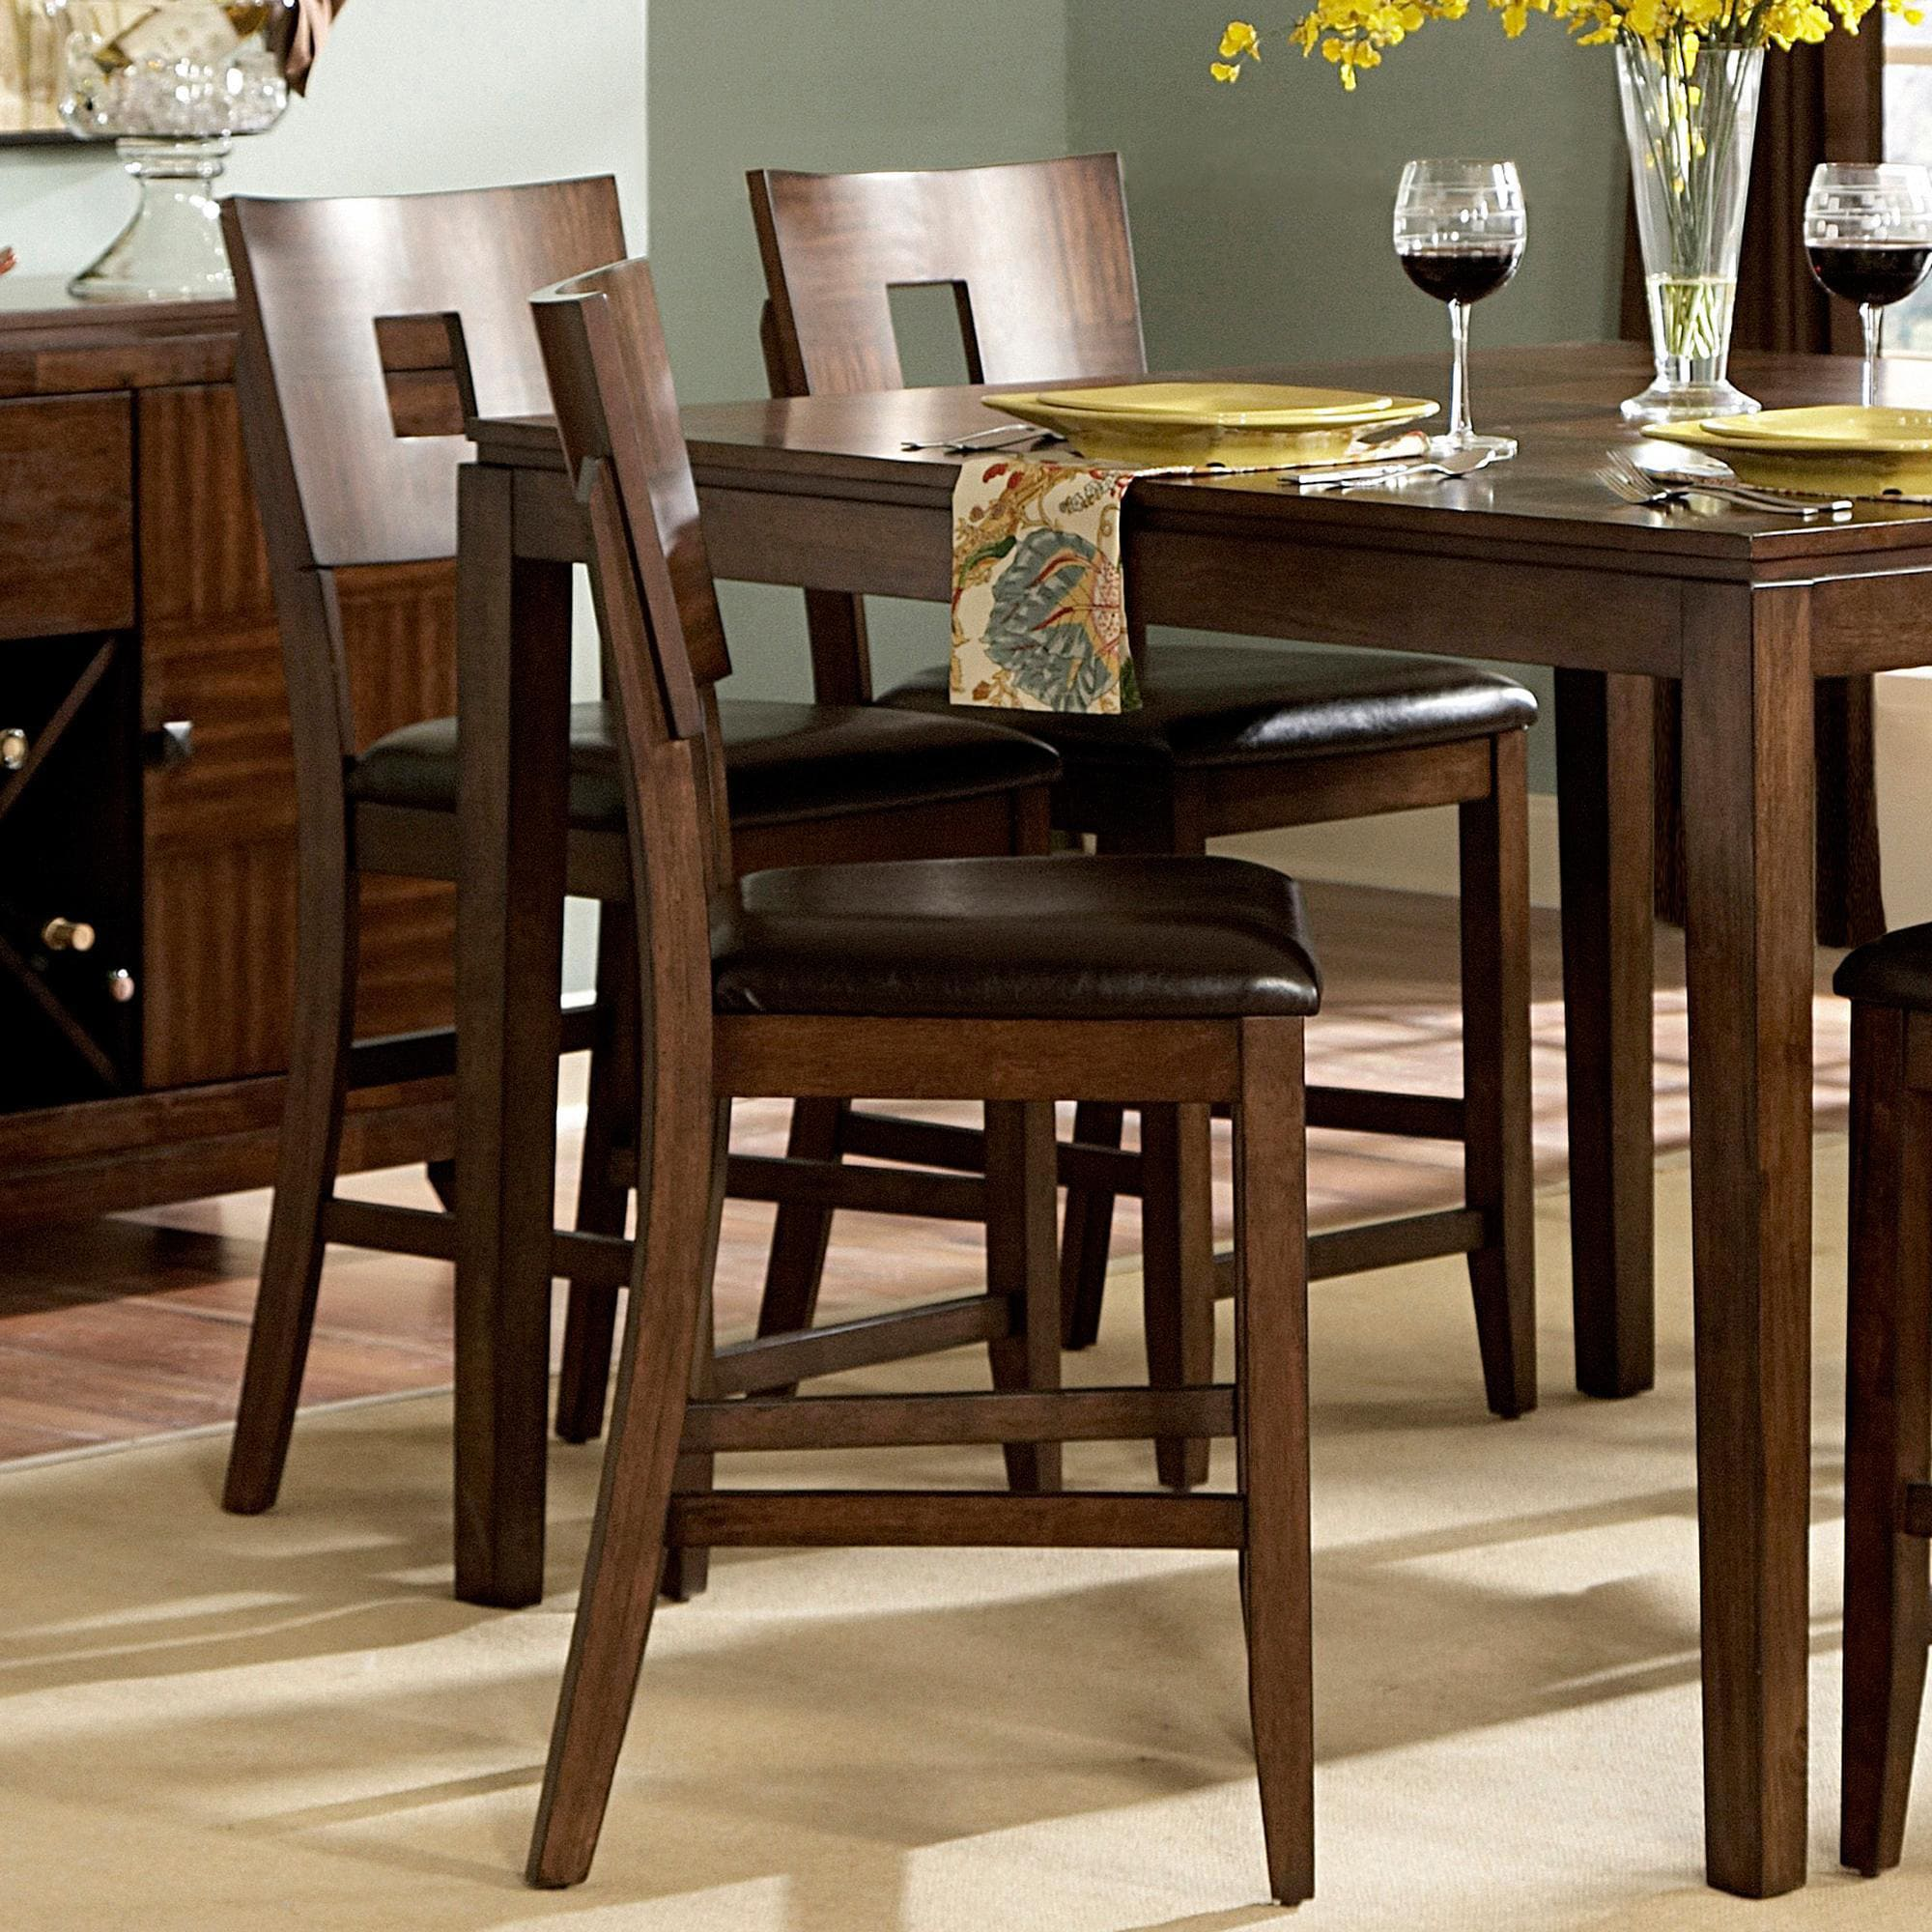 Set Of 2 ETHAN HOME 24-inch Counter Height Chair Stool